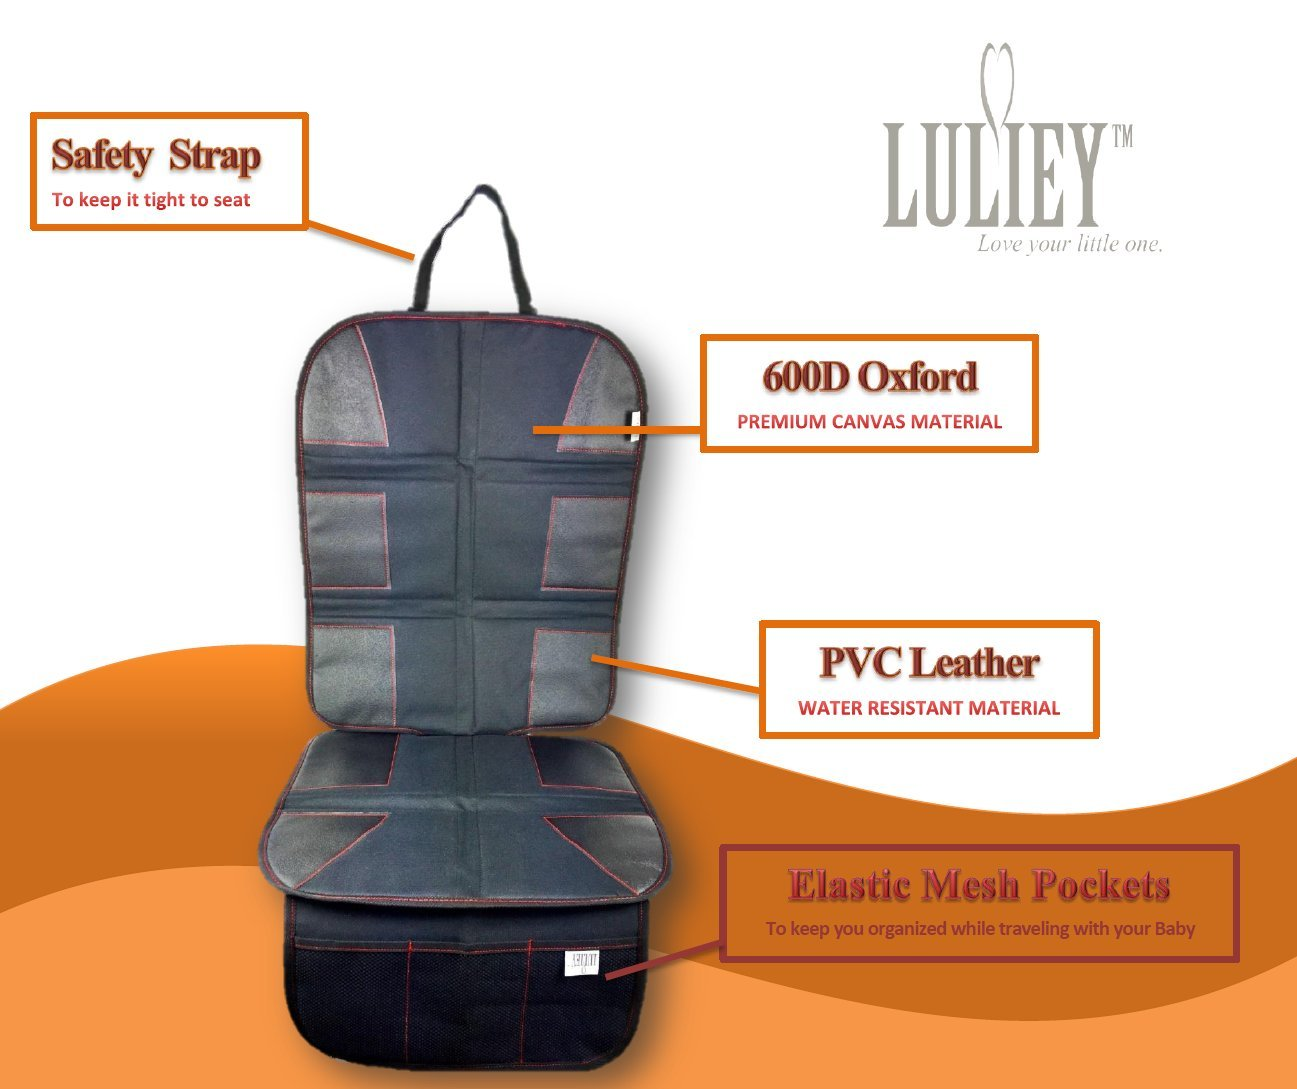 PREMIUM OXFORD Luxury Car Seat Protector - Durable 600D OXFORD Material, Black Leather by Luliey (Image #4)